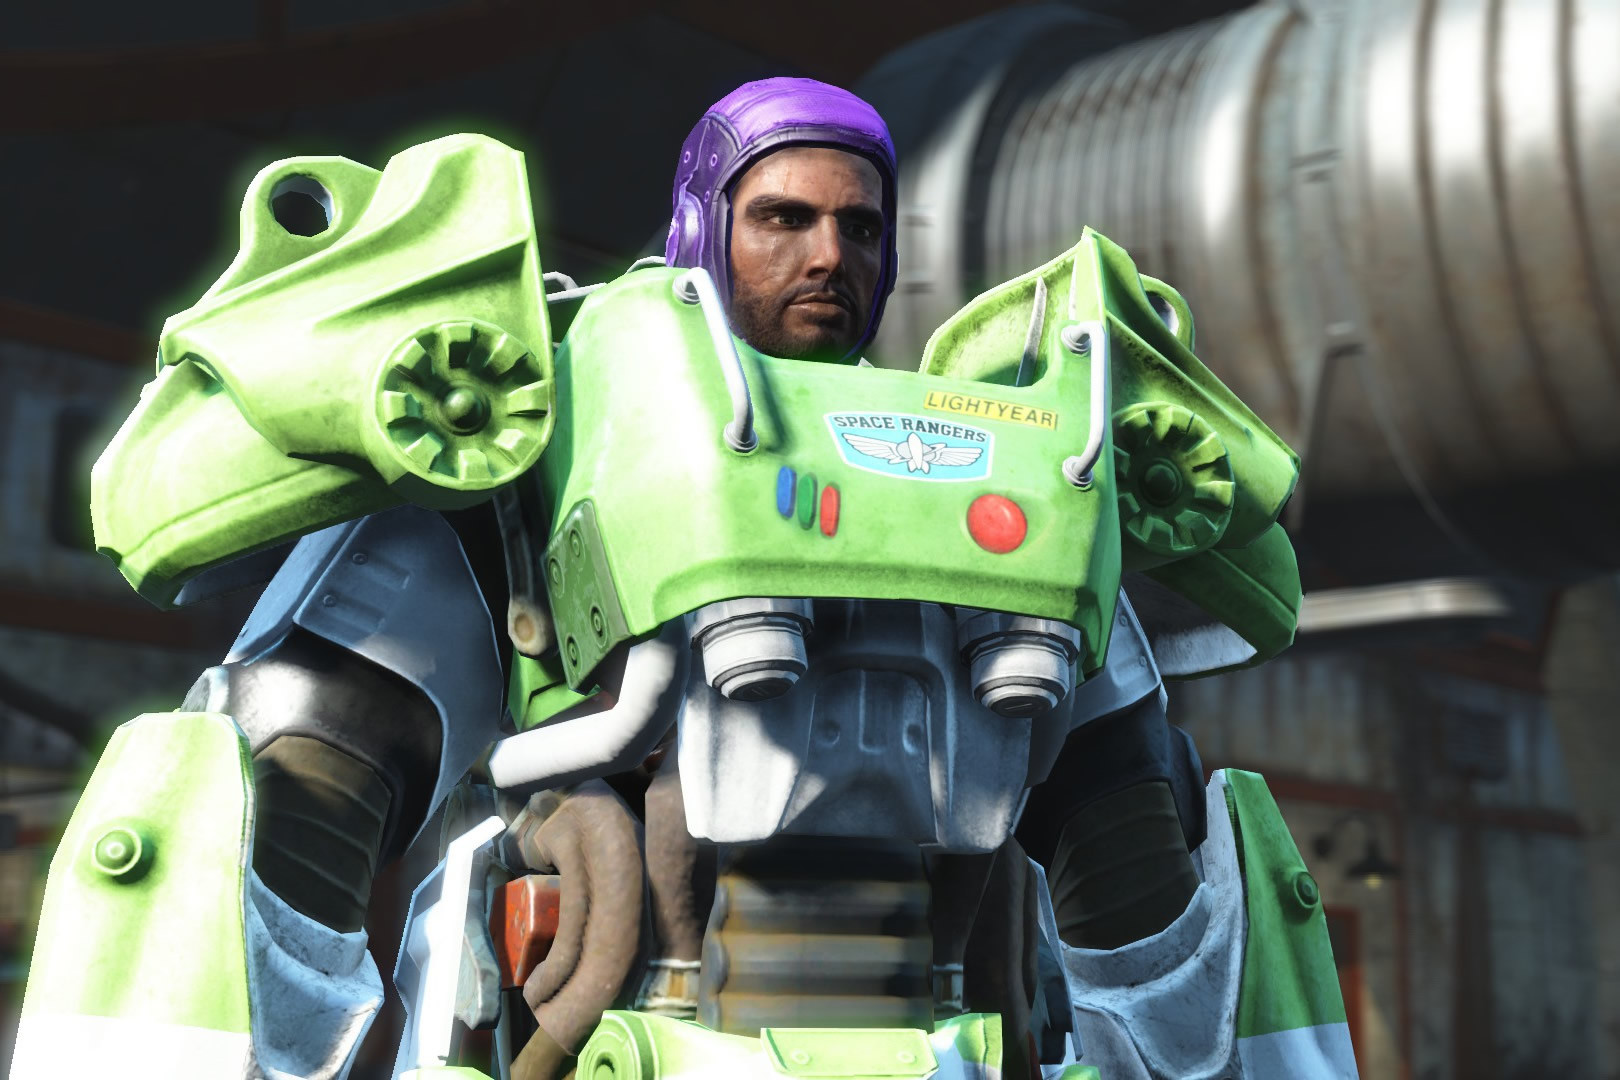 Fallout 4 mods coming to consoles in June, PC beta out now